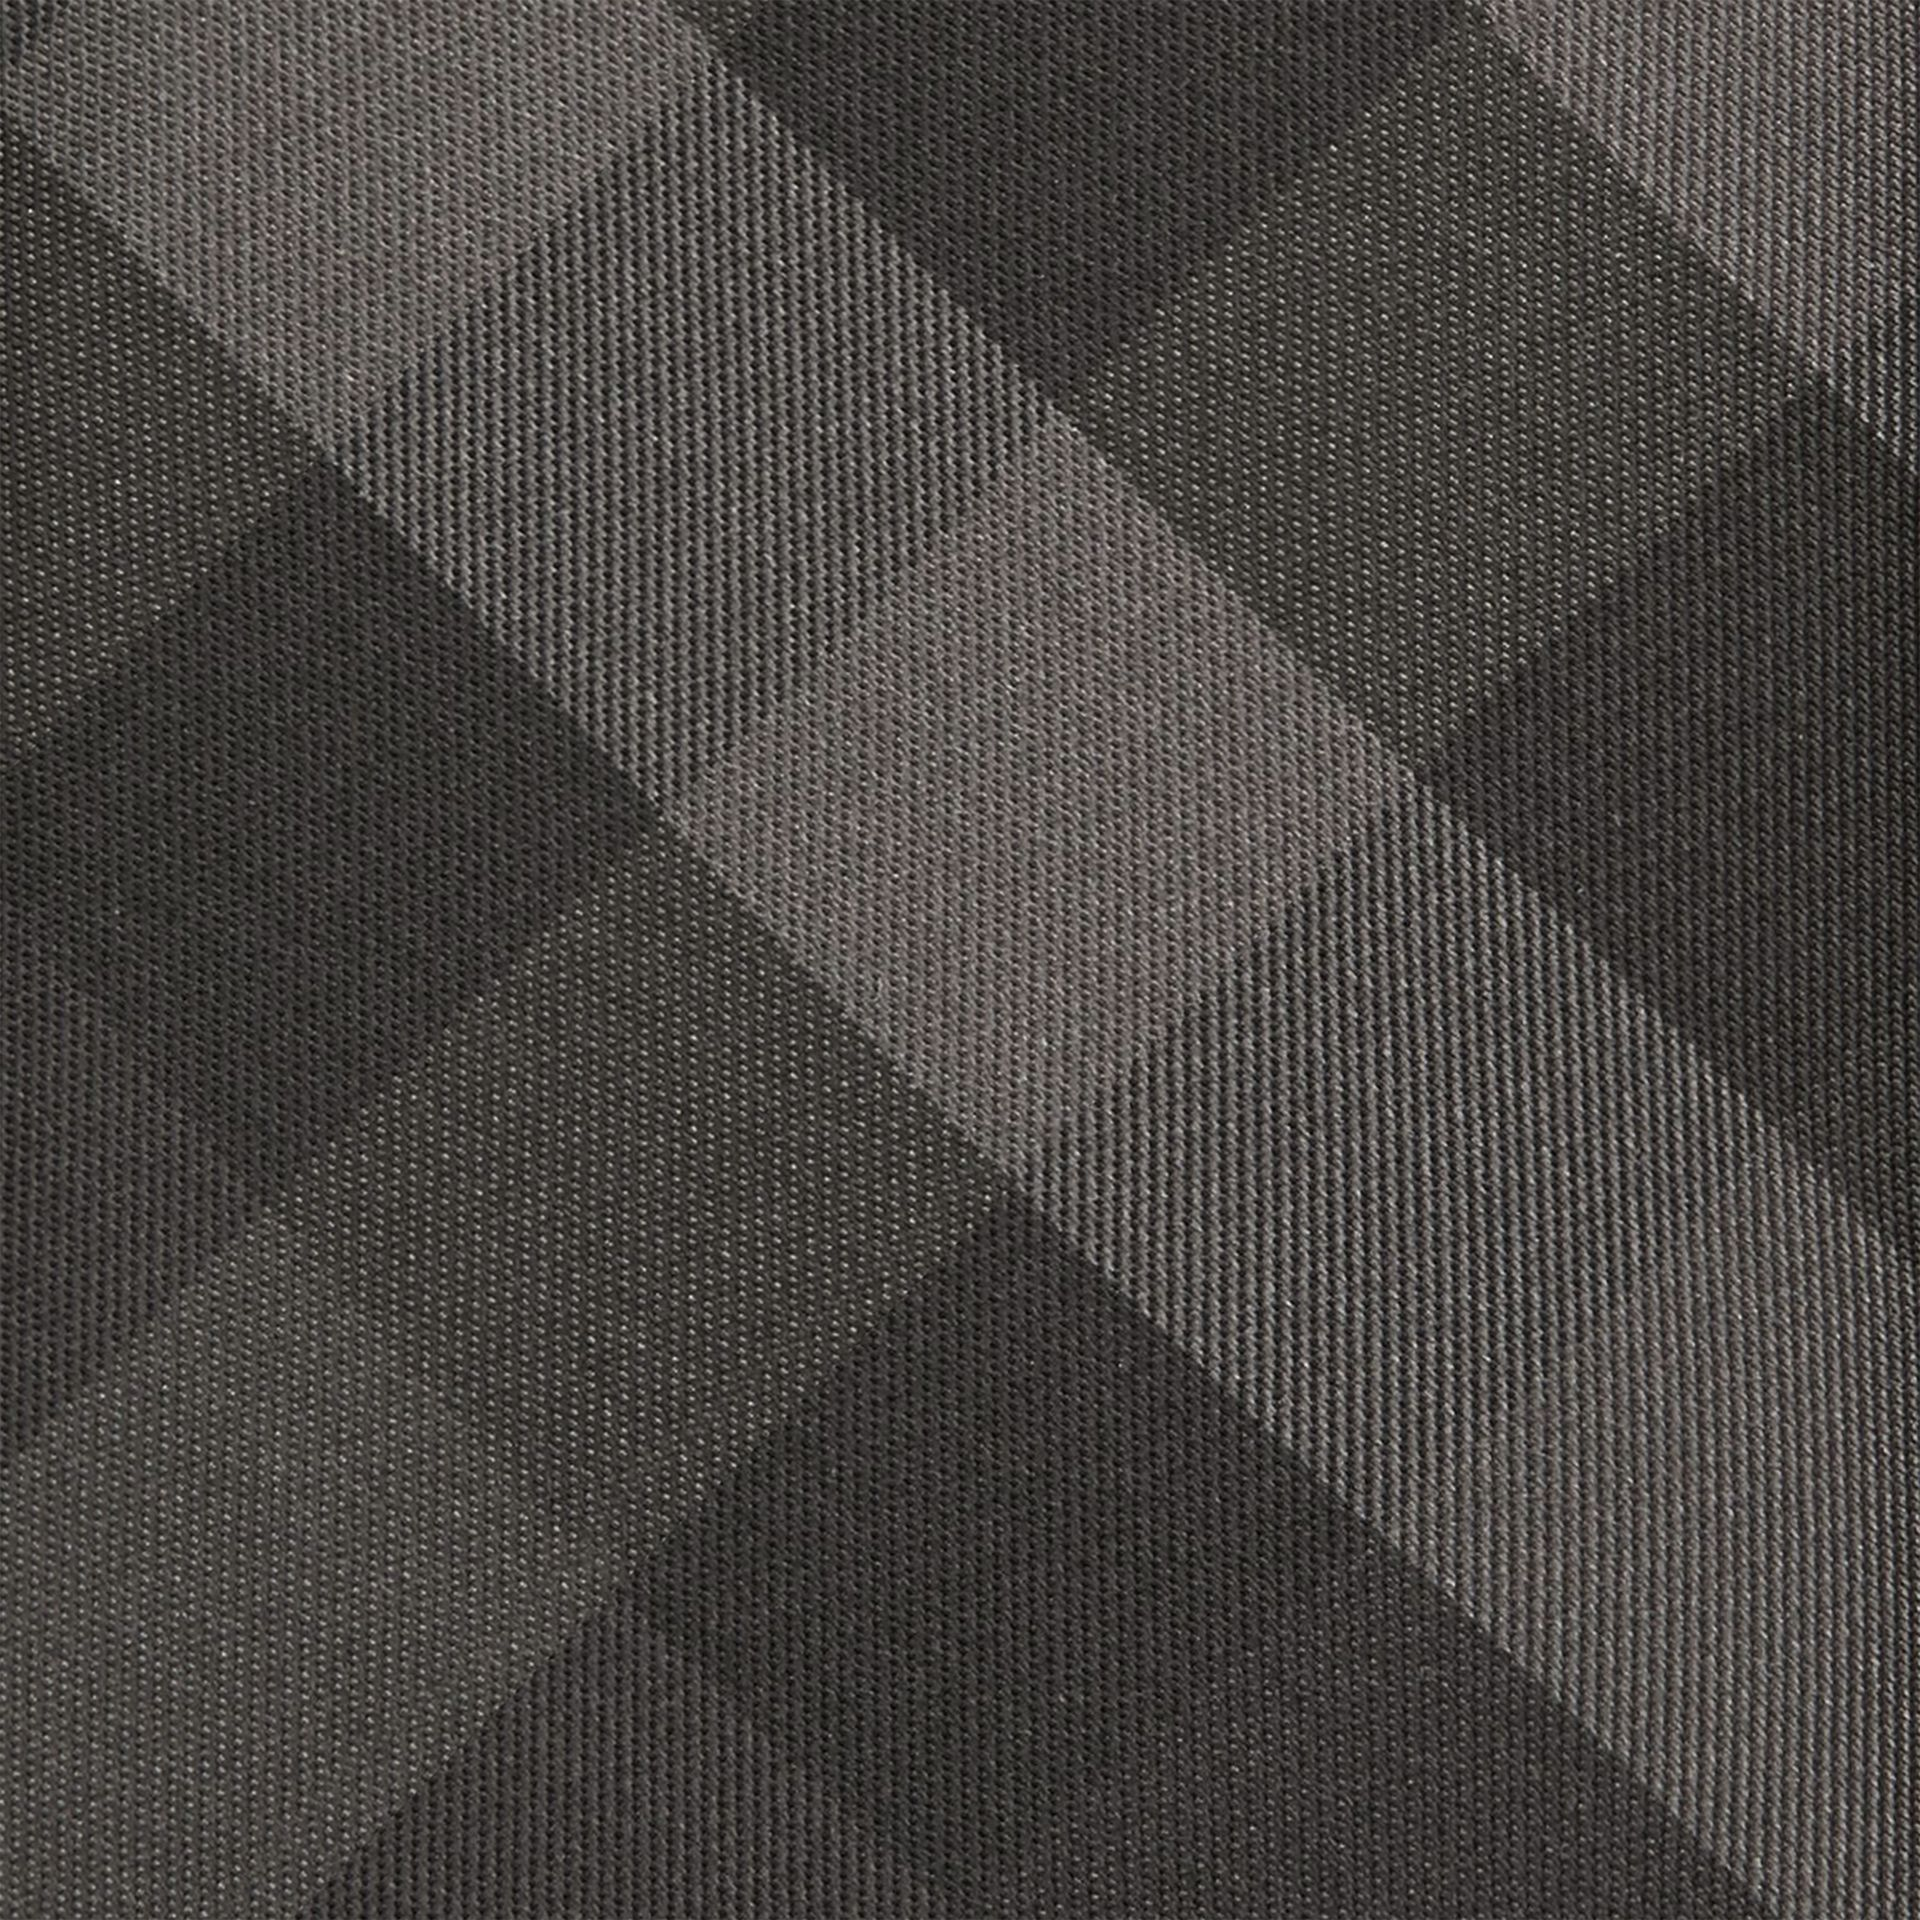 Classic Cut Check Silk Tie in Charcoal - Men | Burberry United States - gallery image 1